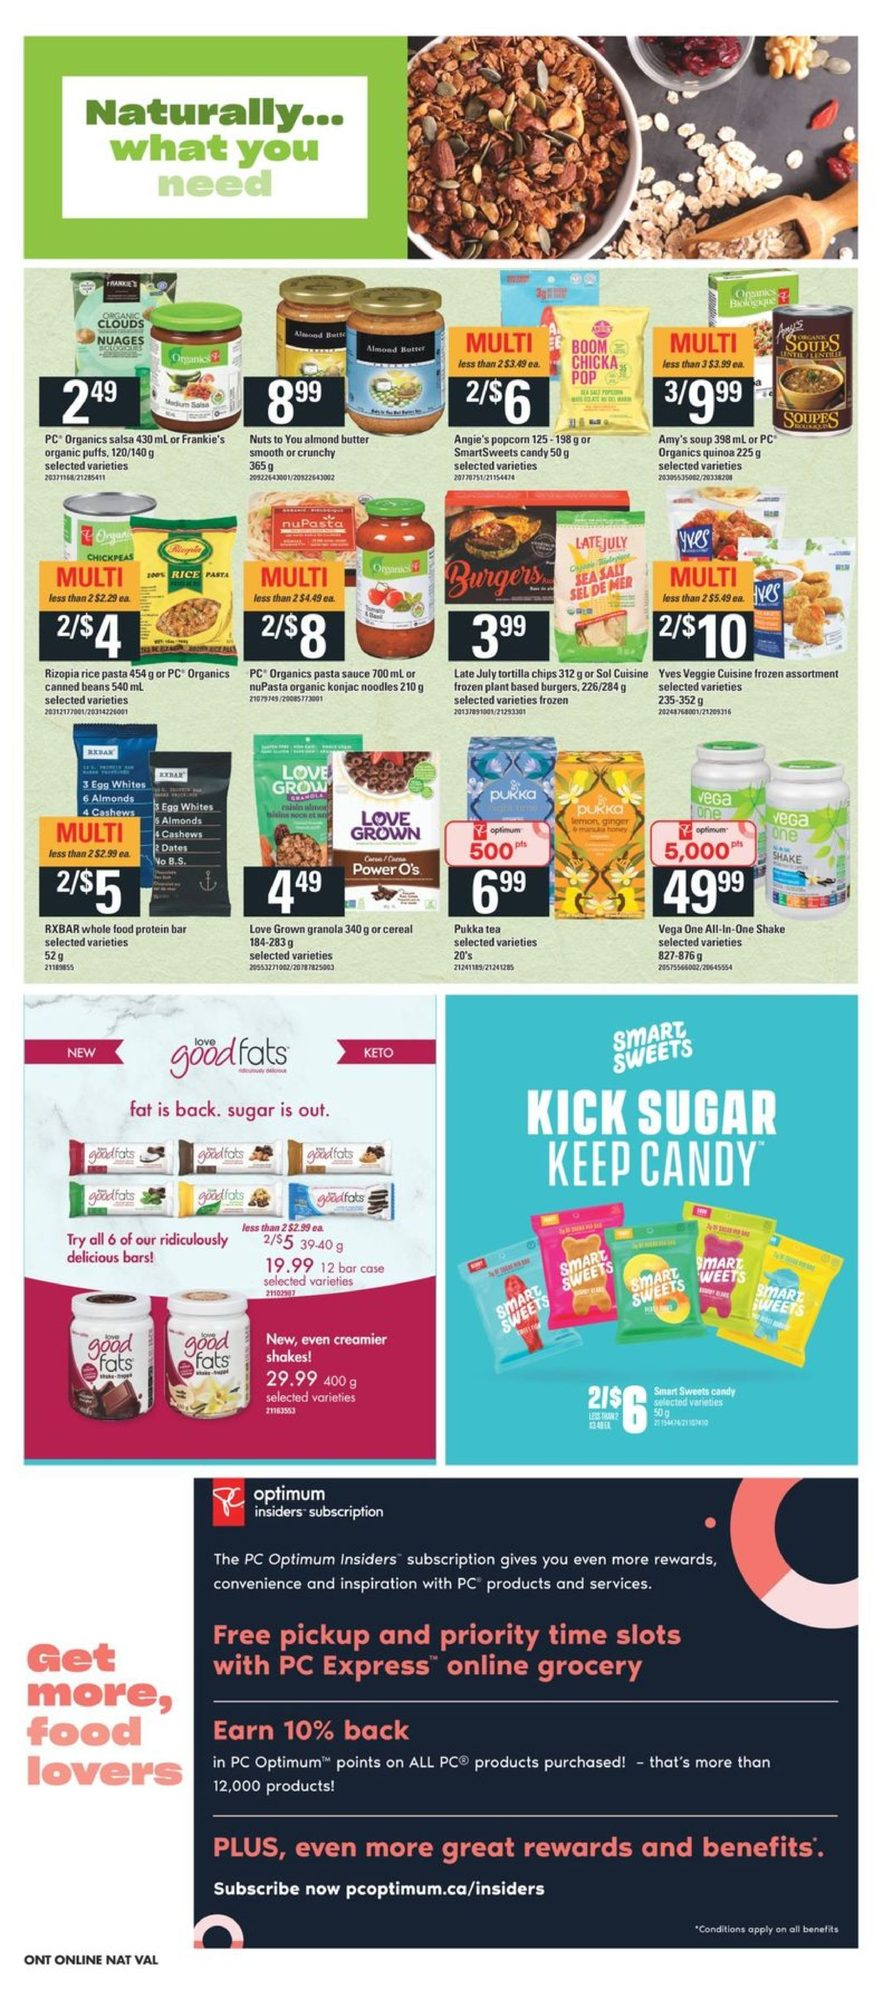 Independent - Weekly Flyer Specials - Page 14